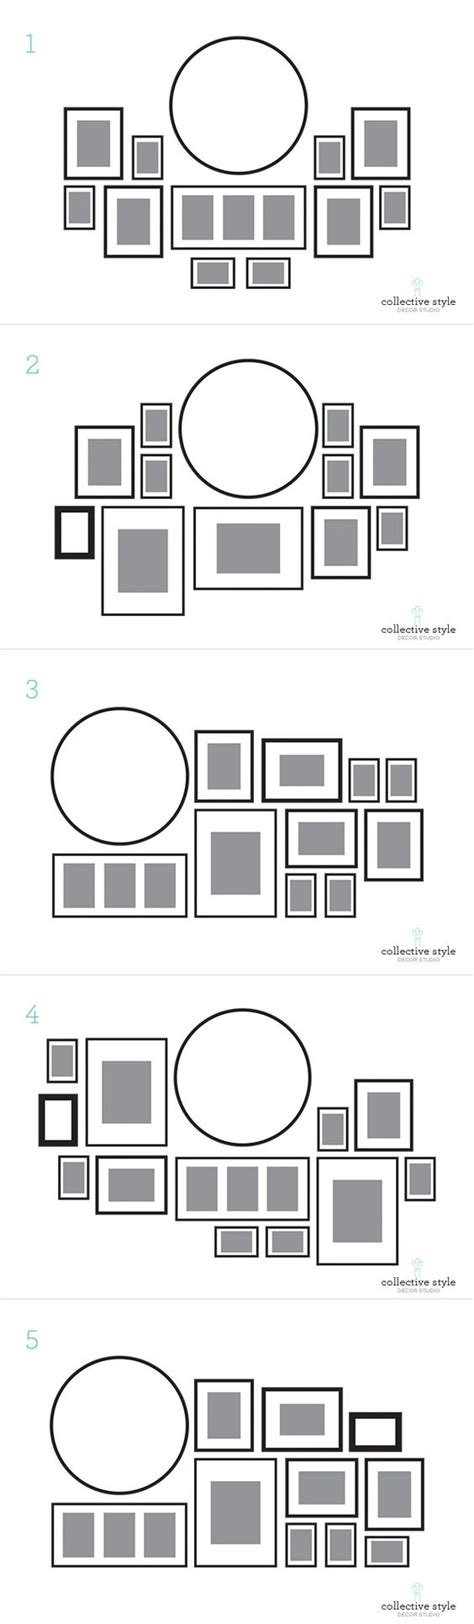 gallery wall layout 57 ideas to decorate walls with pictures shelterness